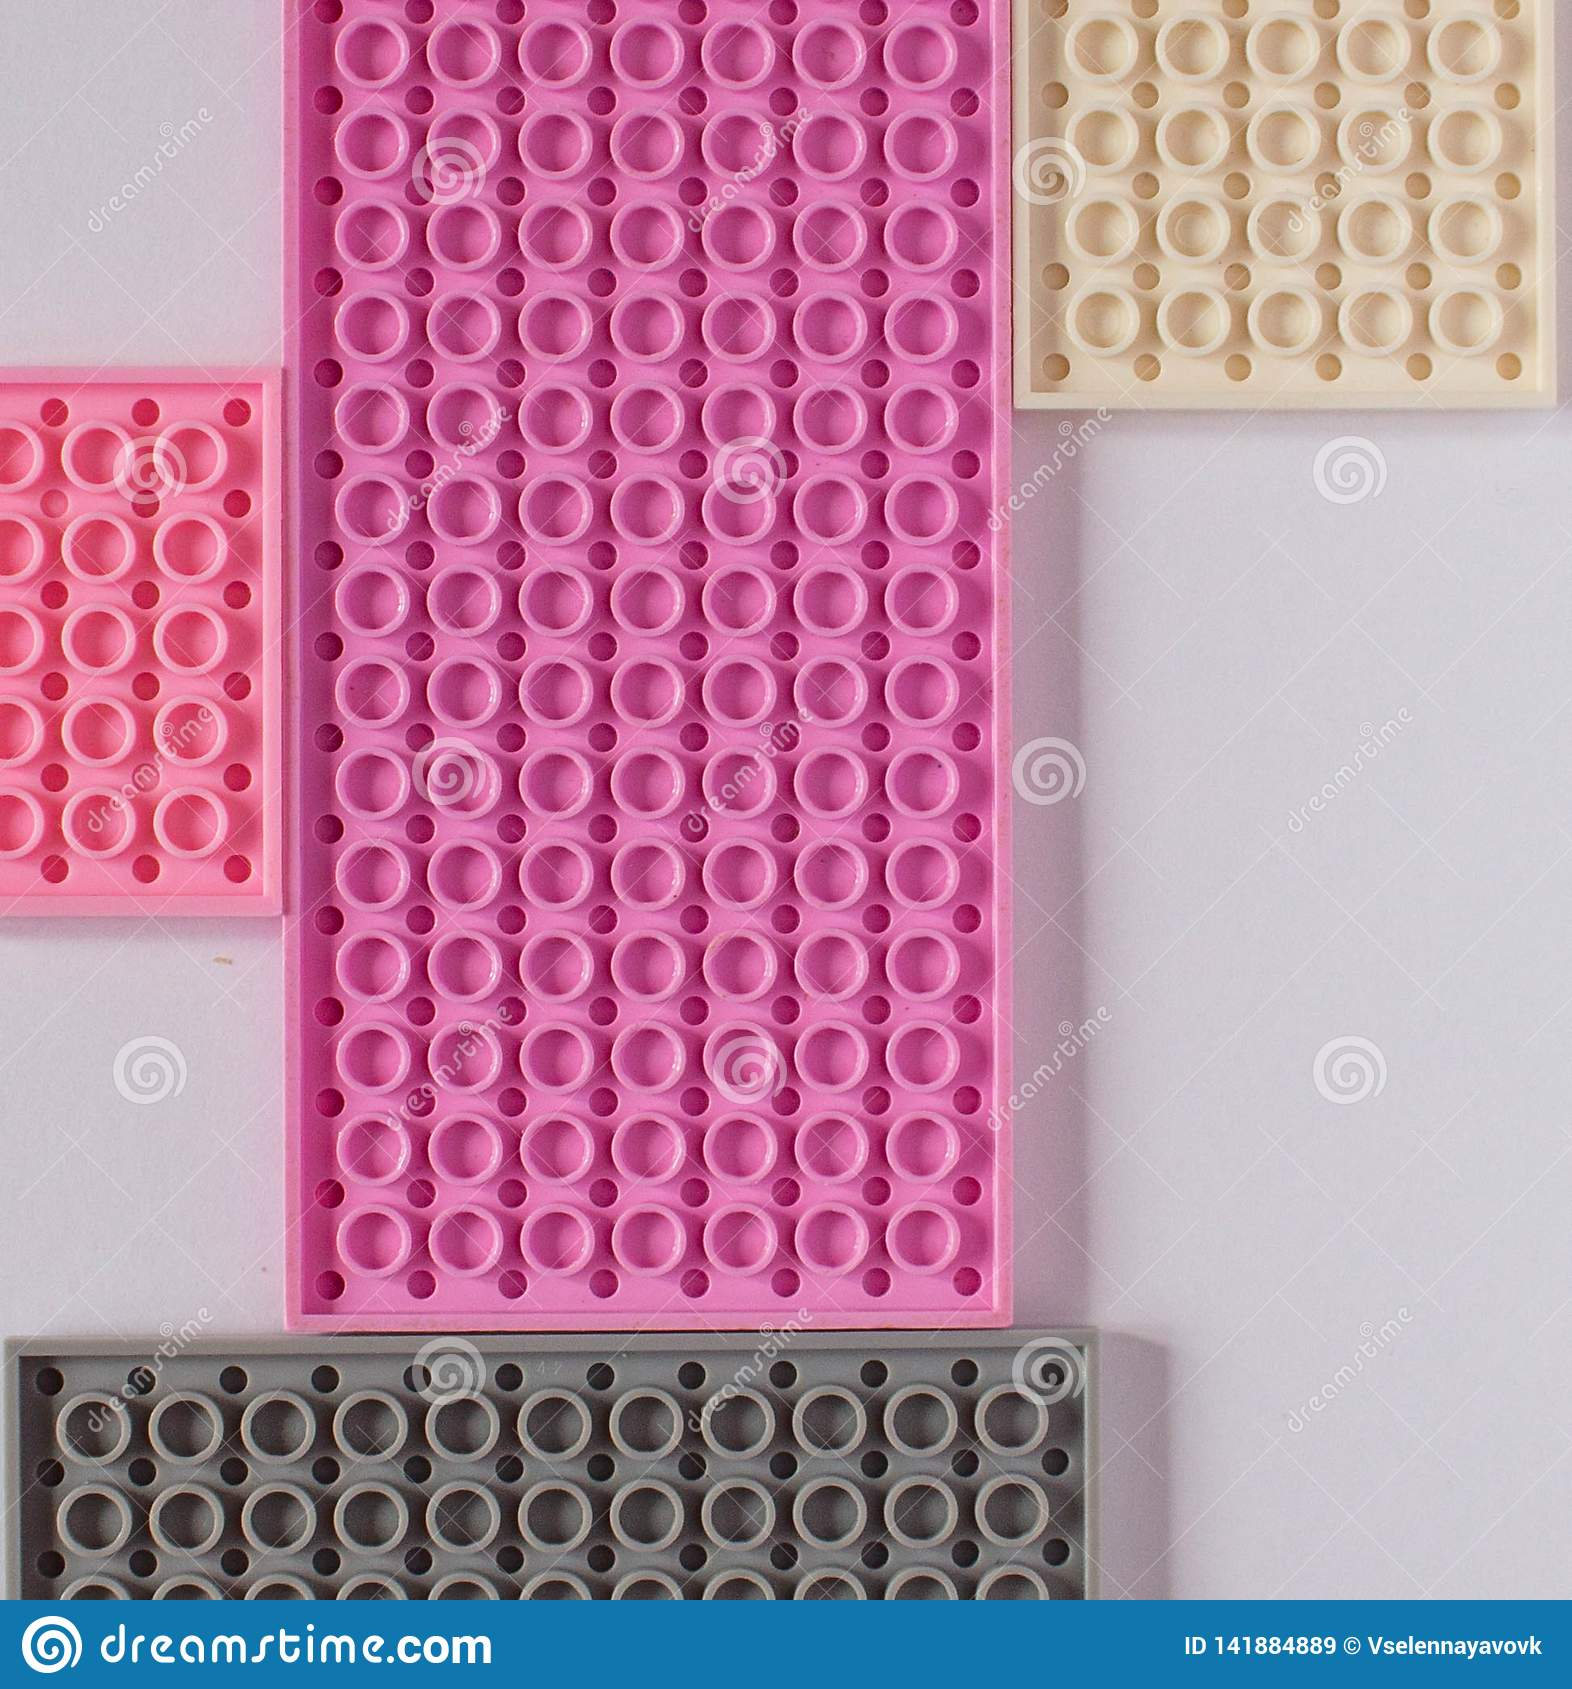 Pink constructor on a white background. Texture. Minimalism concept, Flat lay, top view, background